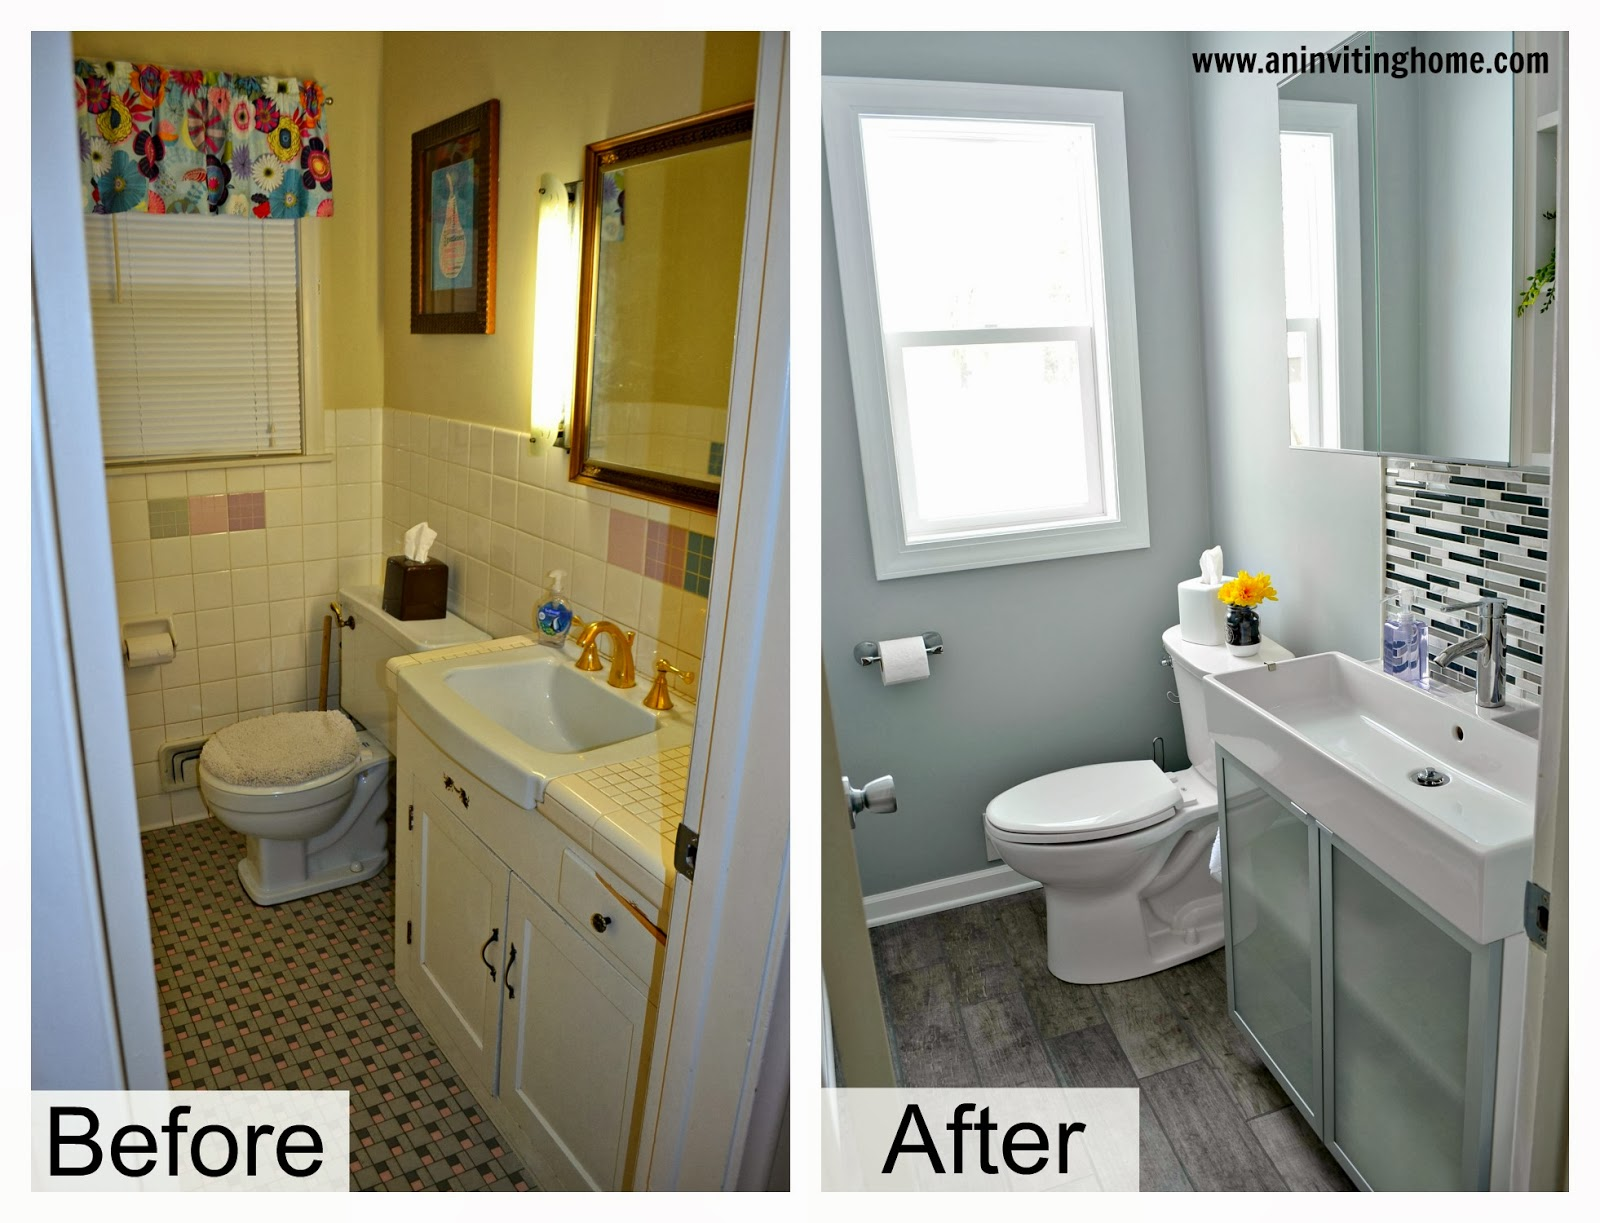 Awesome modern bathroom update before and after